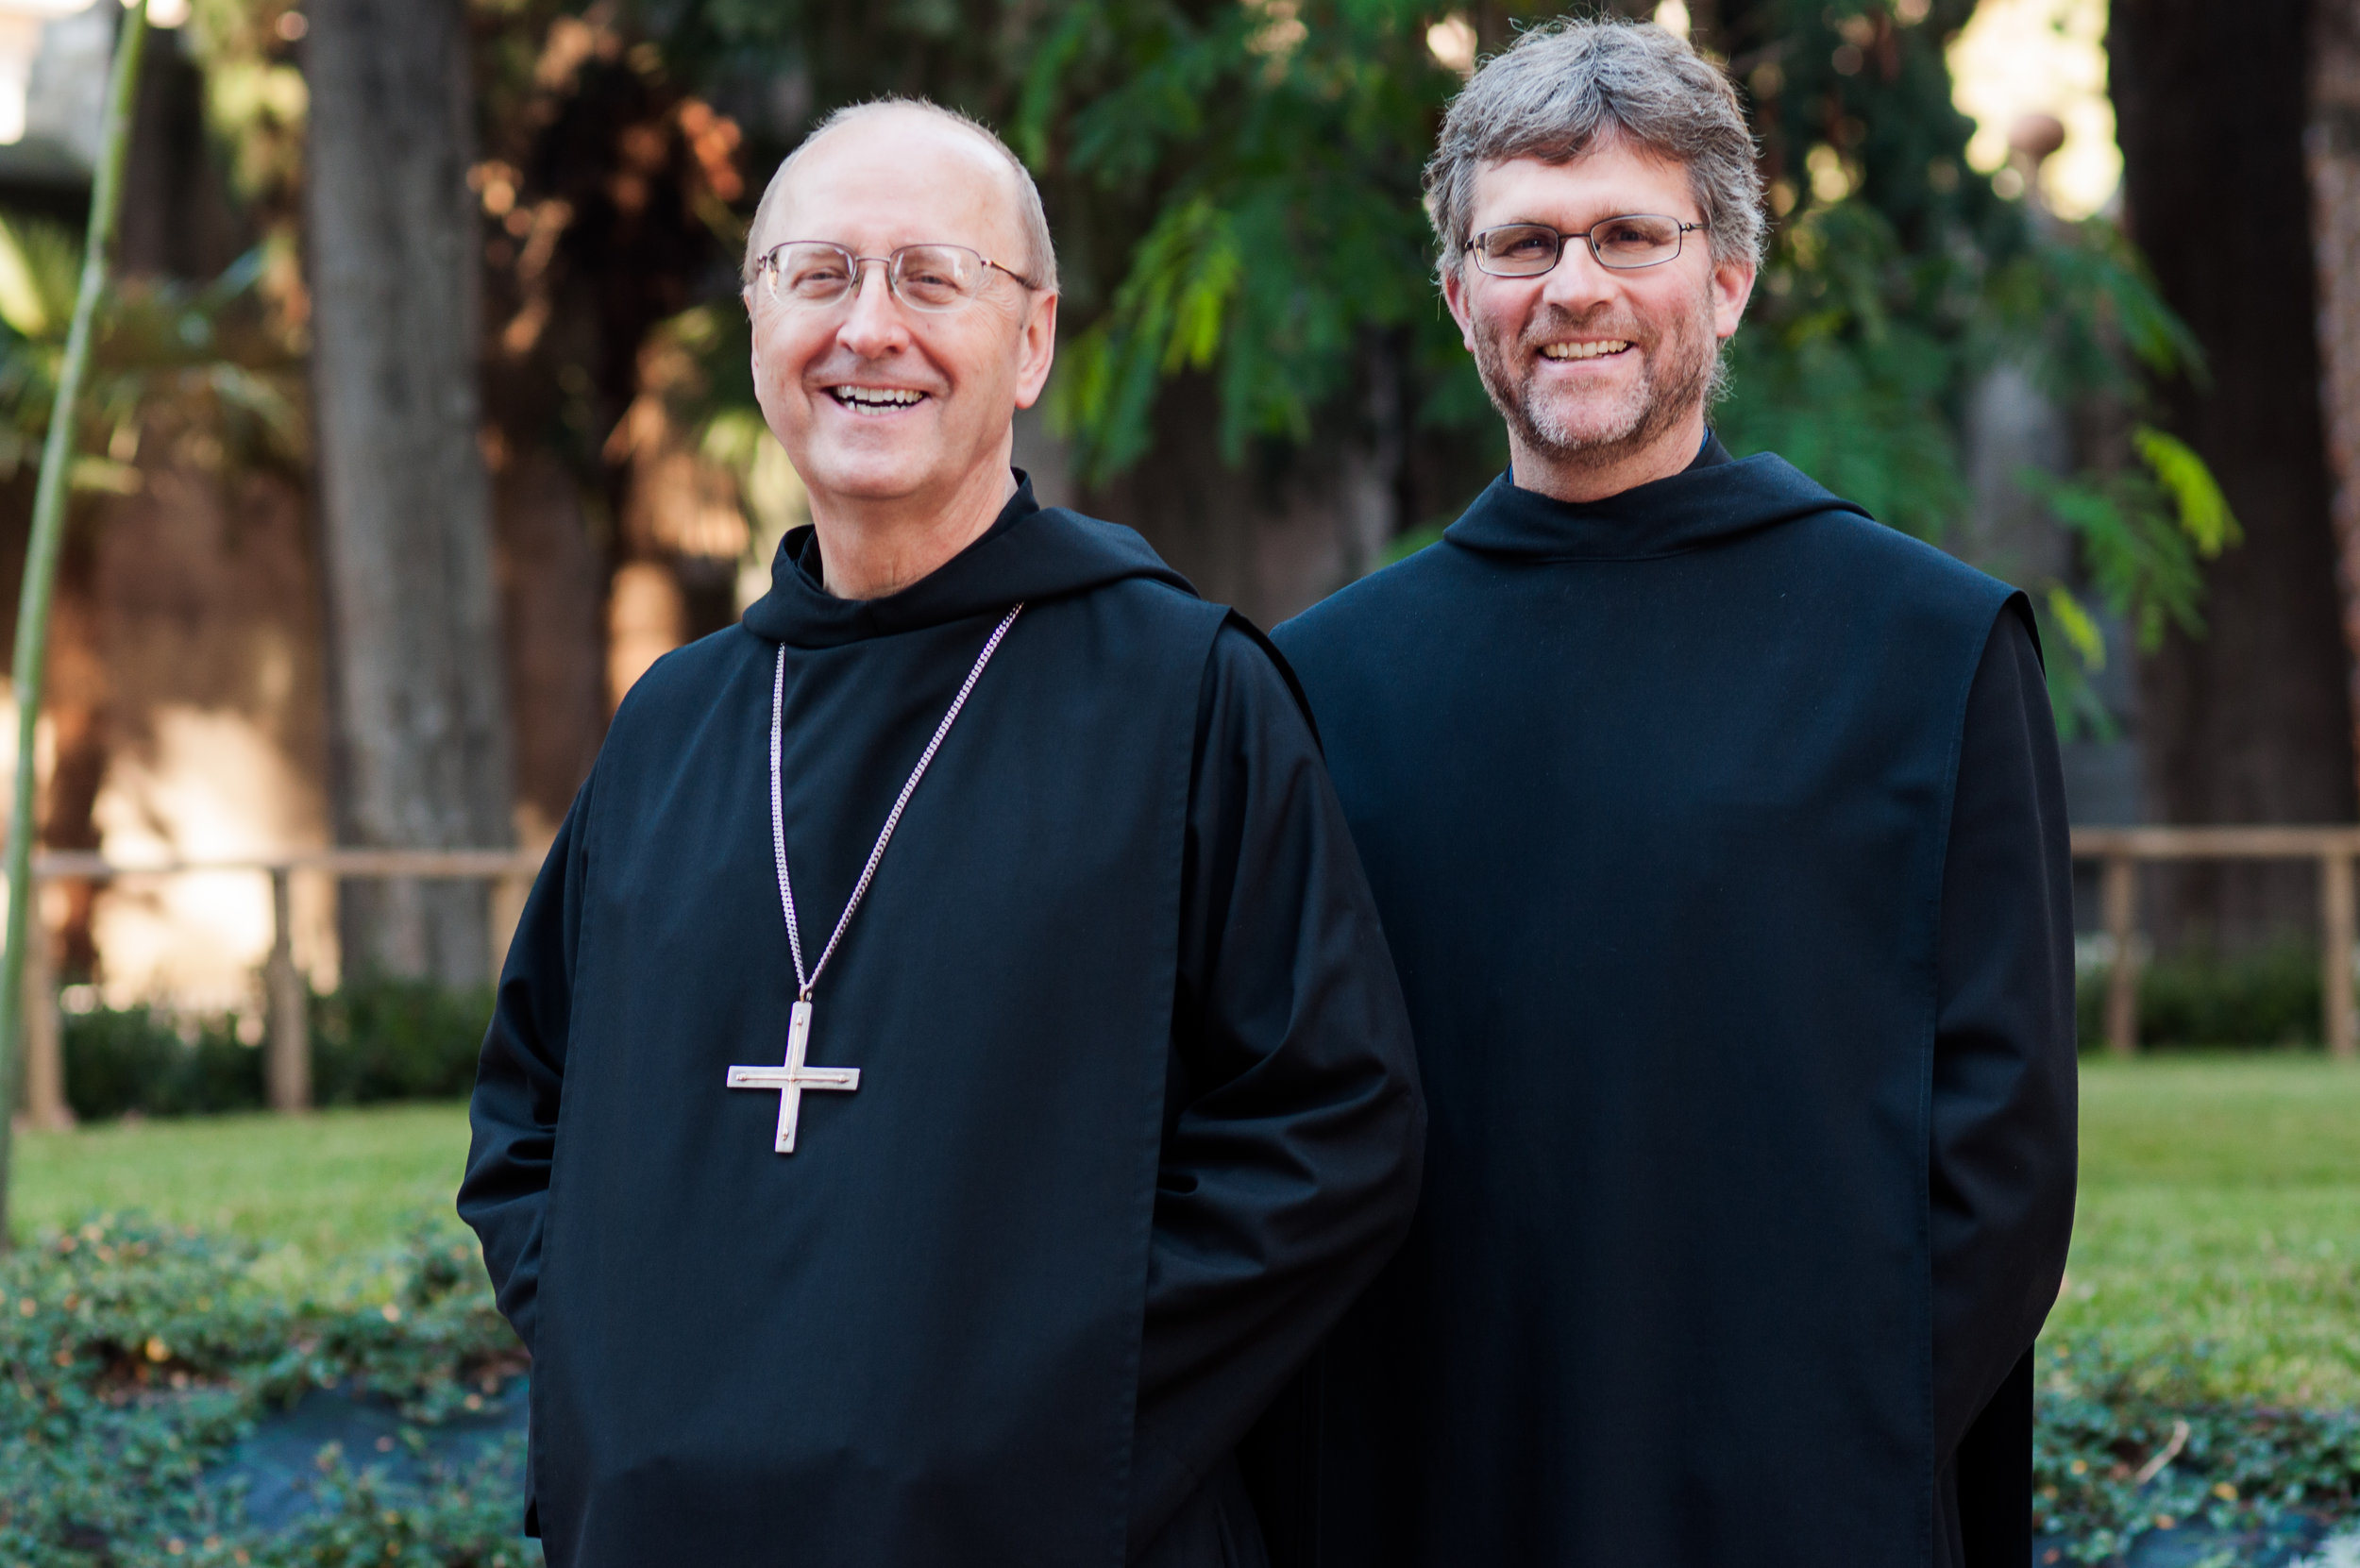 Abbot Primate Gregory Polan, OSB (from Conception Abbey) with Fr. Prior Mauritius Wilde, OSB